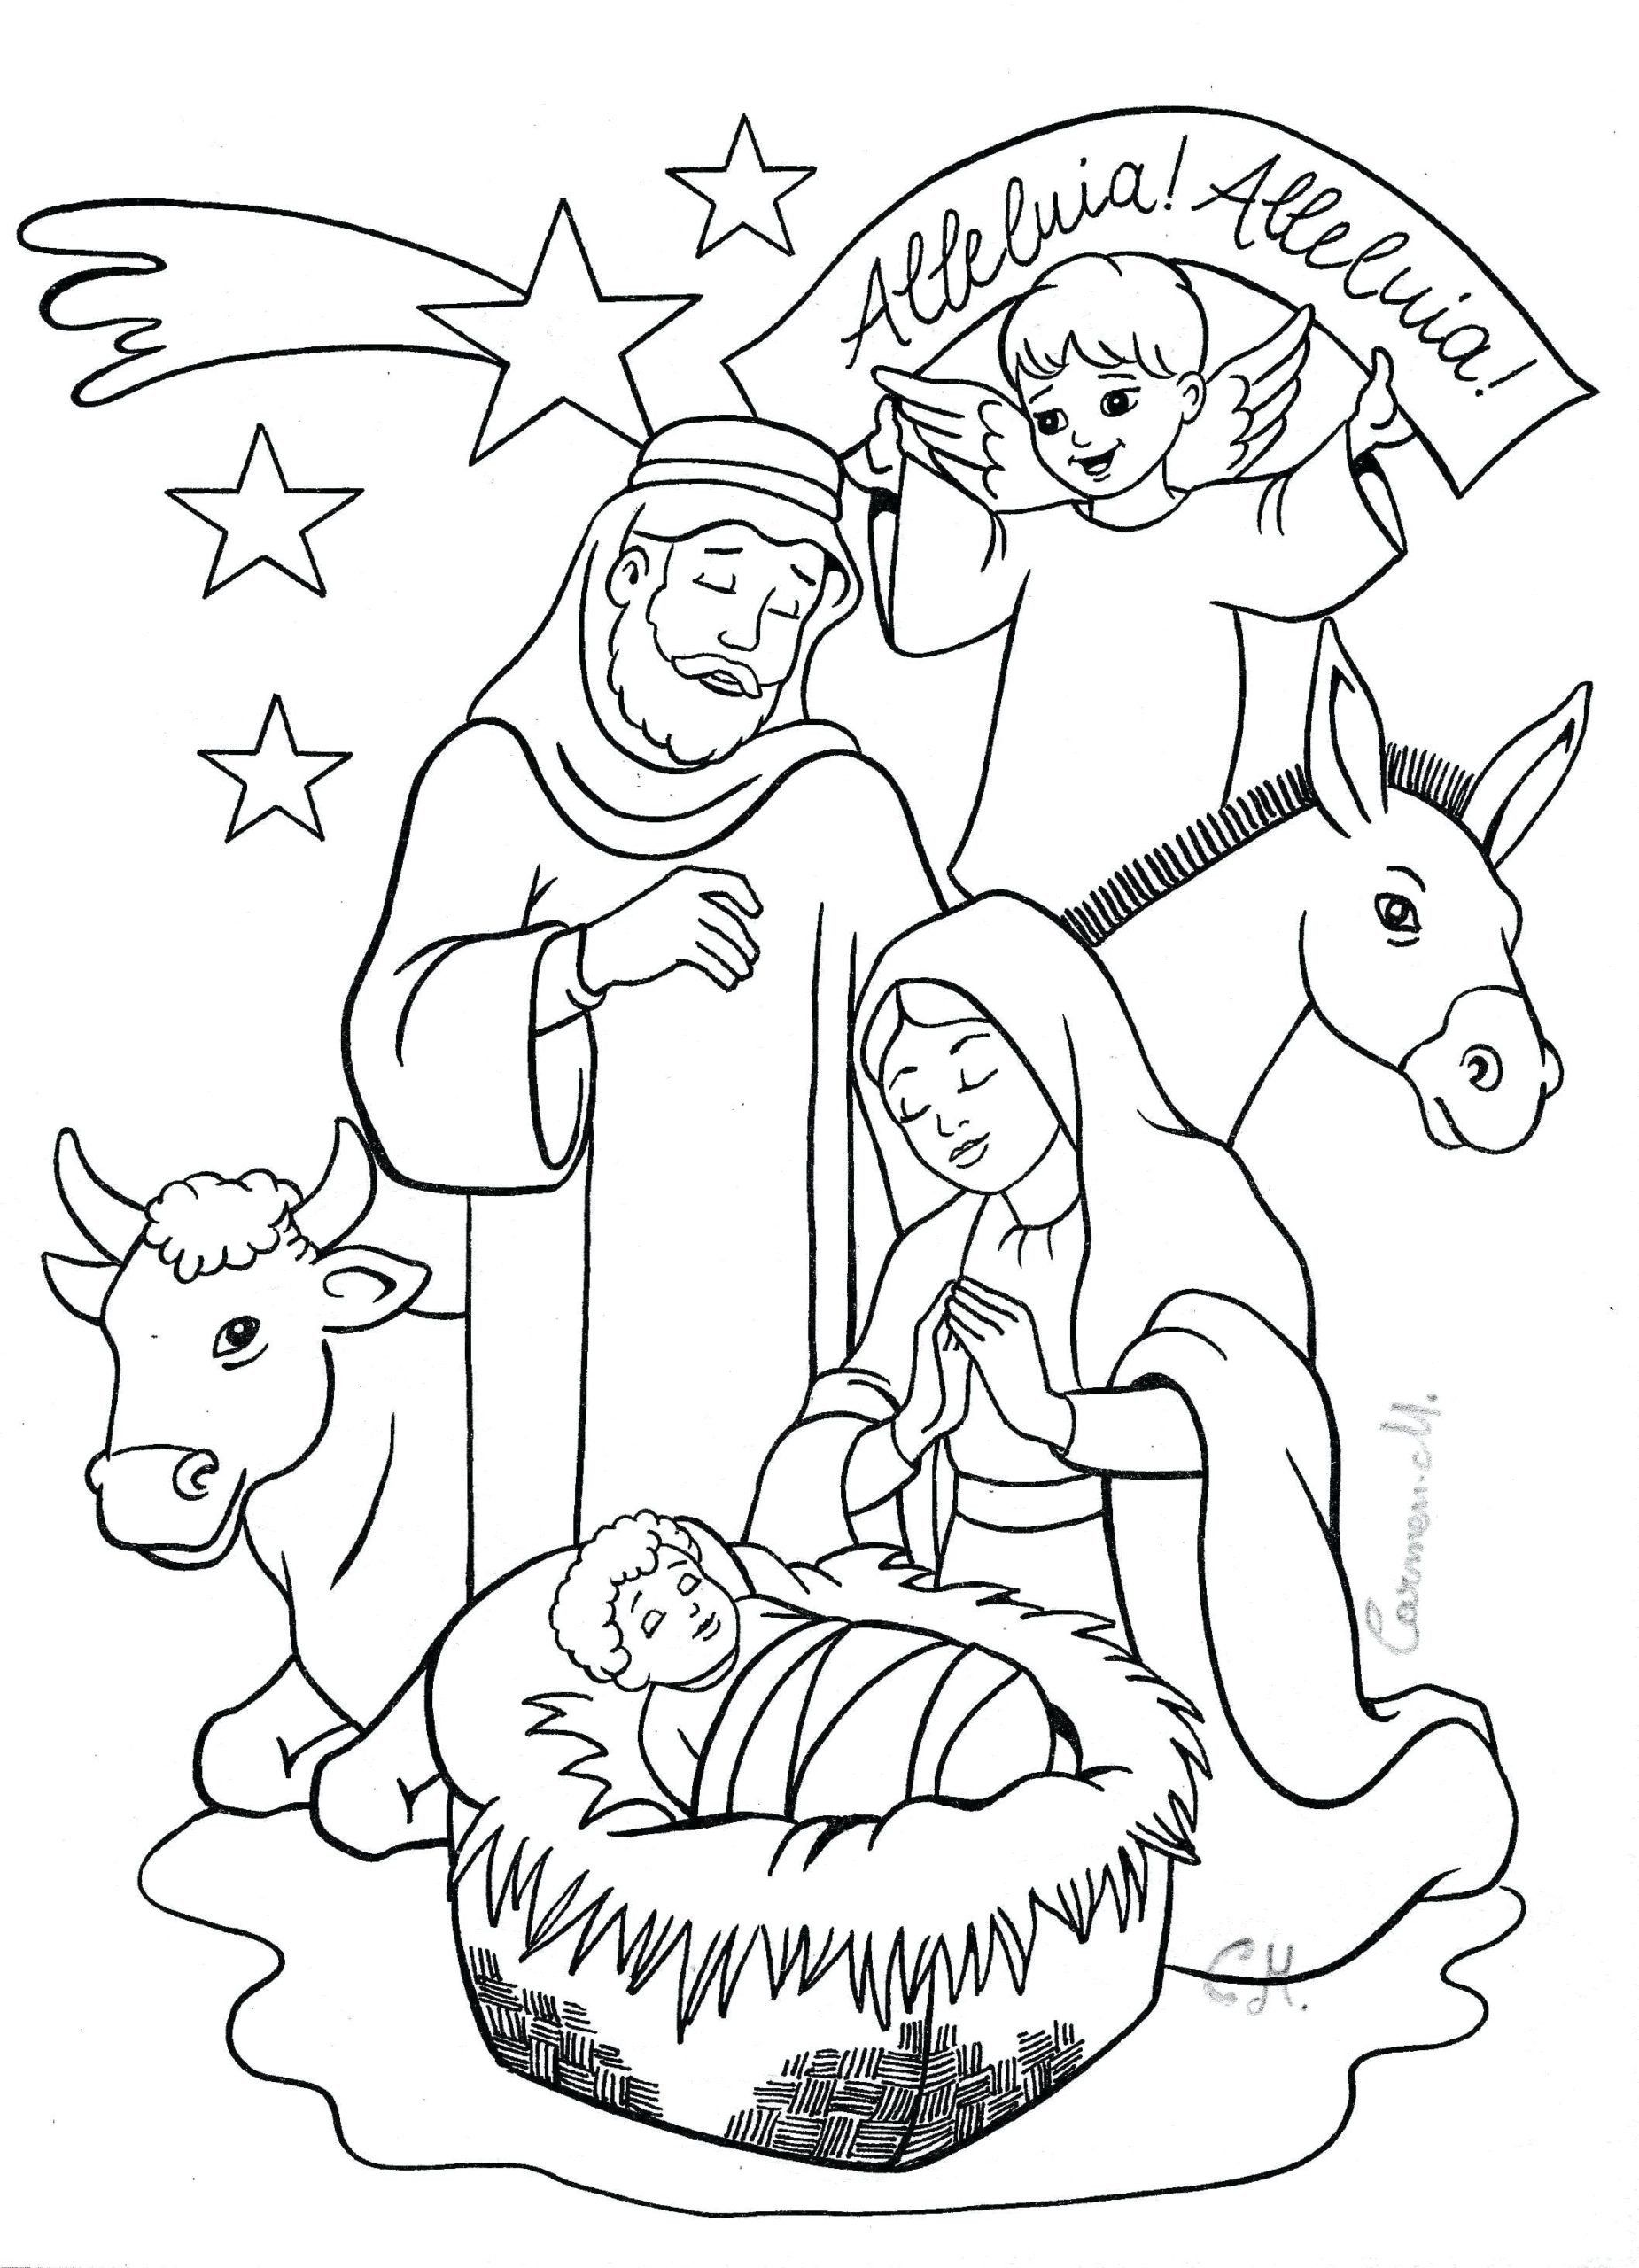 Nativity Coloring Pages Free Printable Coloring Book Coloring Book Free Nativity Scene Page In 2020 Nativity Coloring Pages Nativity Coloring Christmas Coloring Sheets